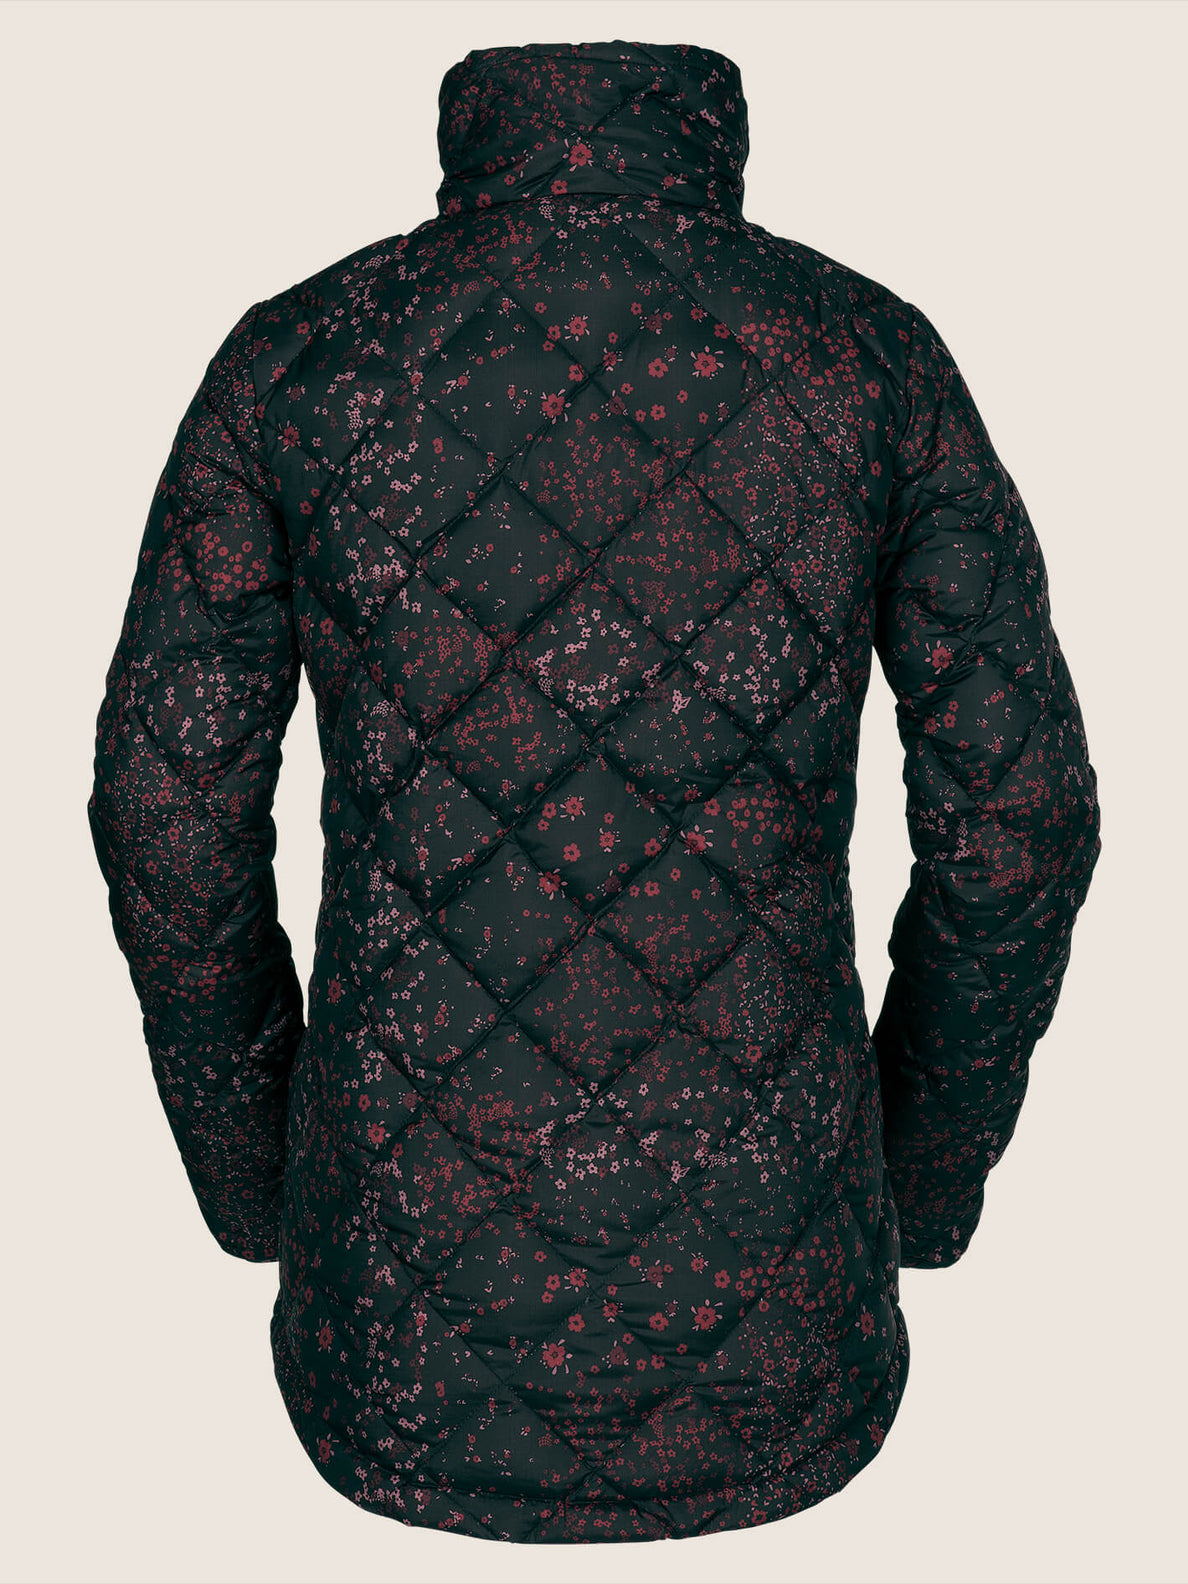 Skies Down Puff Jacket In Black Floral Print, Back View